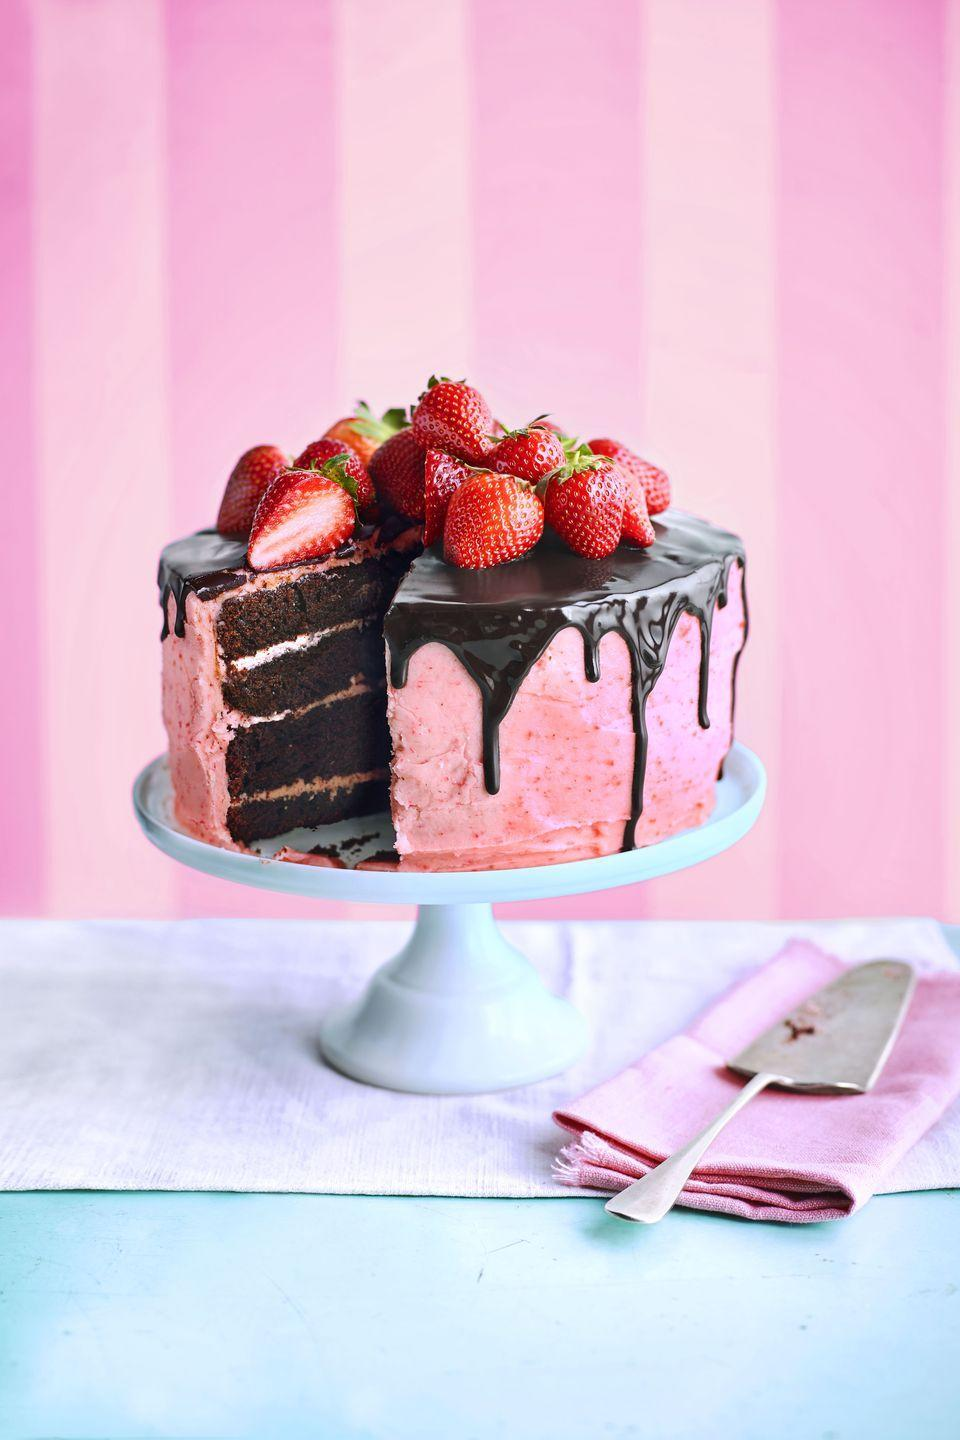 """<p>Turn an iconic combo into a celebration-worthy centerpiece.</p><p><a href=""""https://www.womansday.com/food-recipes/a36502165/choco-berry-surprise-cake-recipe/"""" rel=""""nofollow noopener"""" target=""""_blank"""" data-ylk=""""slk:Get the recipe for Choco-Berry Surprise Cake."""" class=""""link rapid-noclick-resp""""><em>Get the recipe for Choco-Berry Surprise Cake.</em></a></p>"""